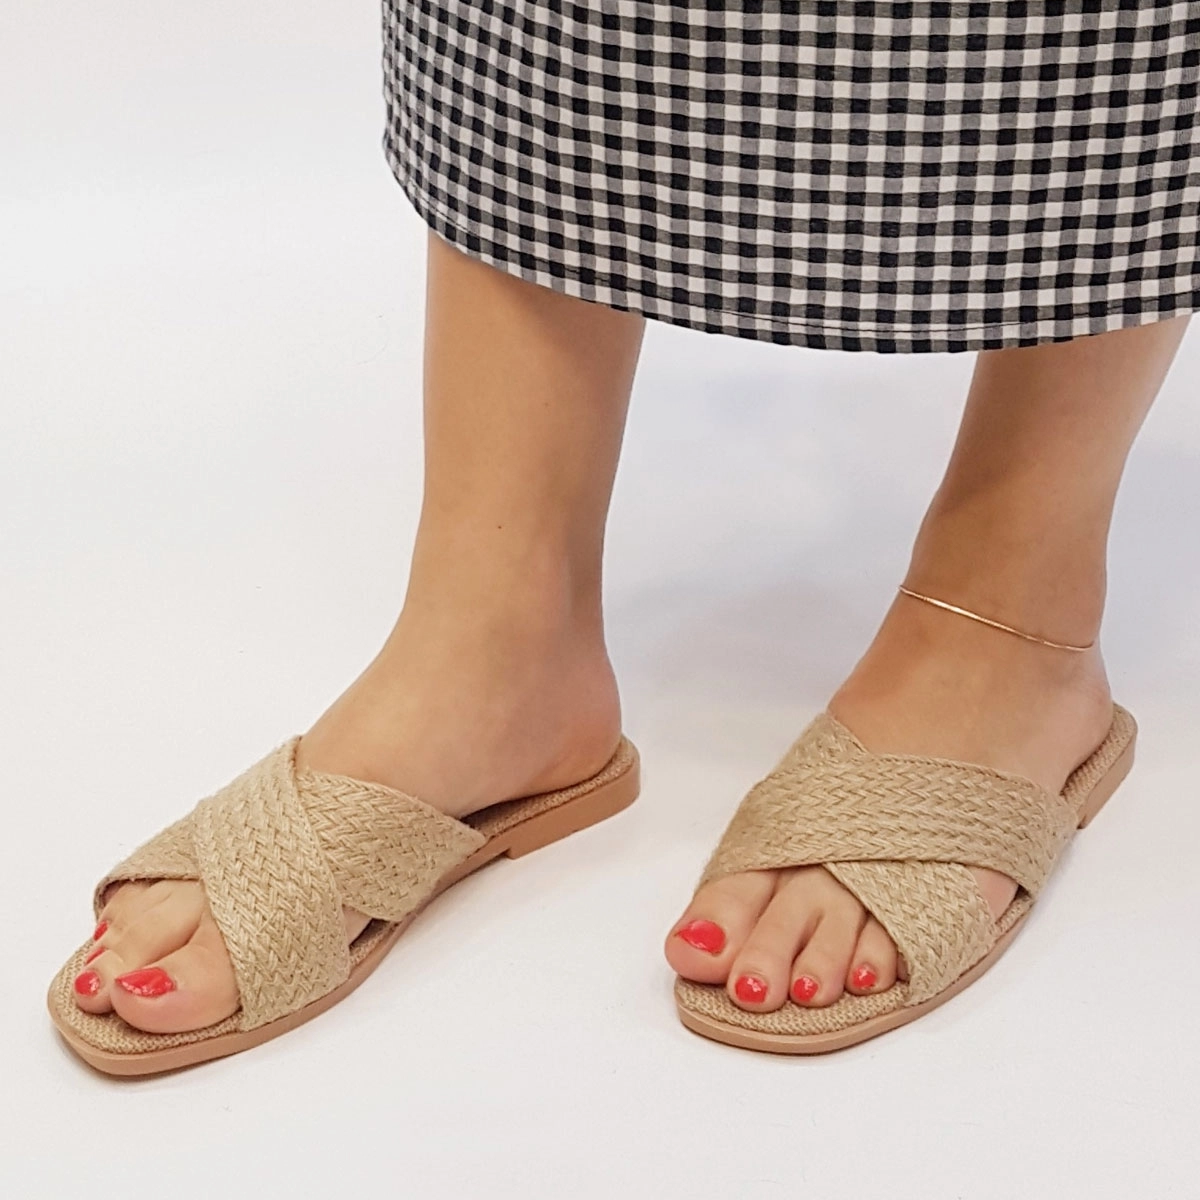 Casual Decussated Pure Color Peep-Toe Knitted Slippers Sandals